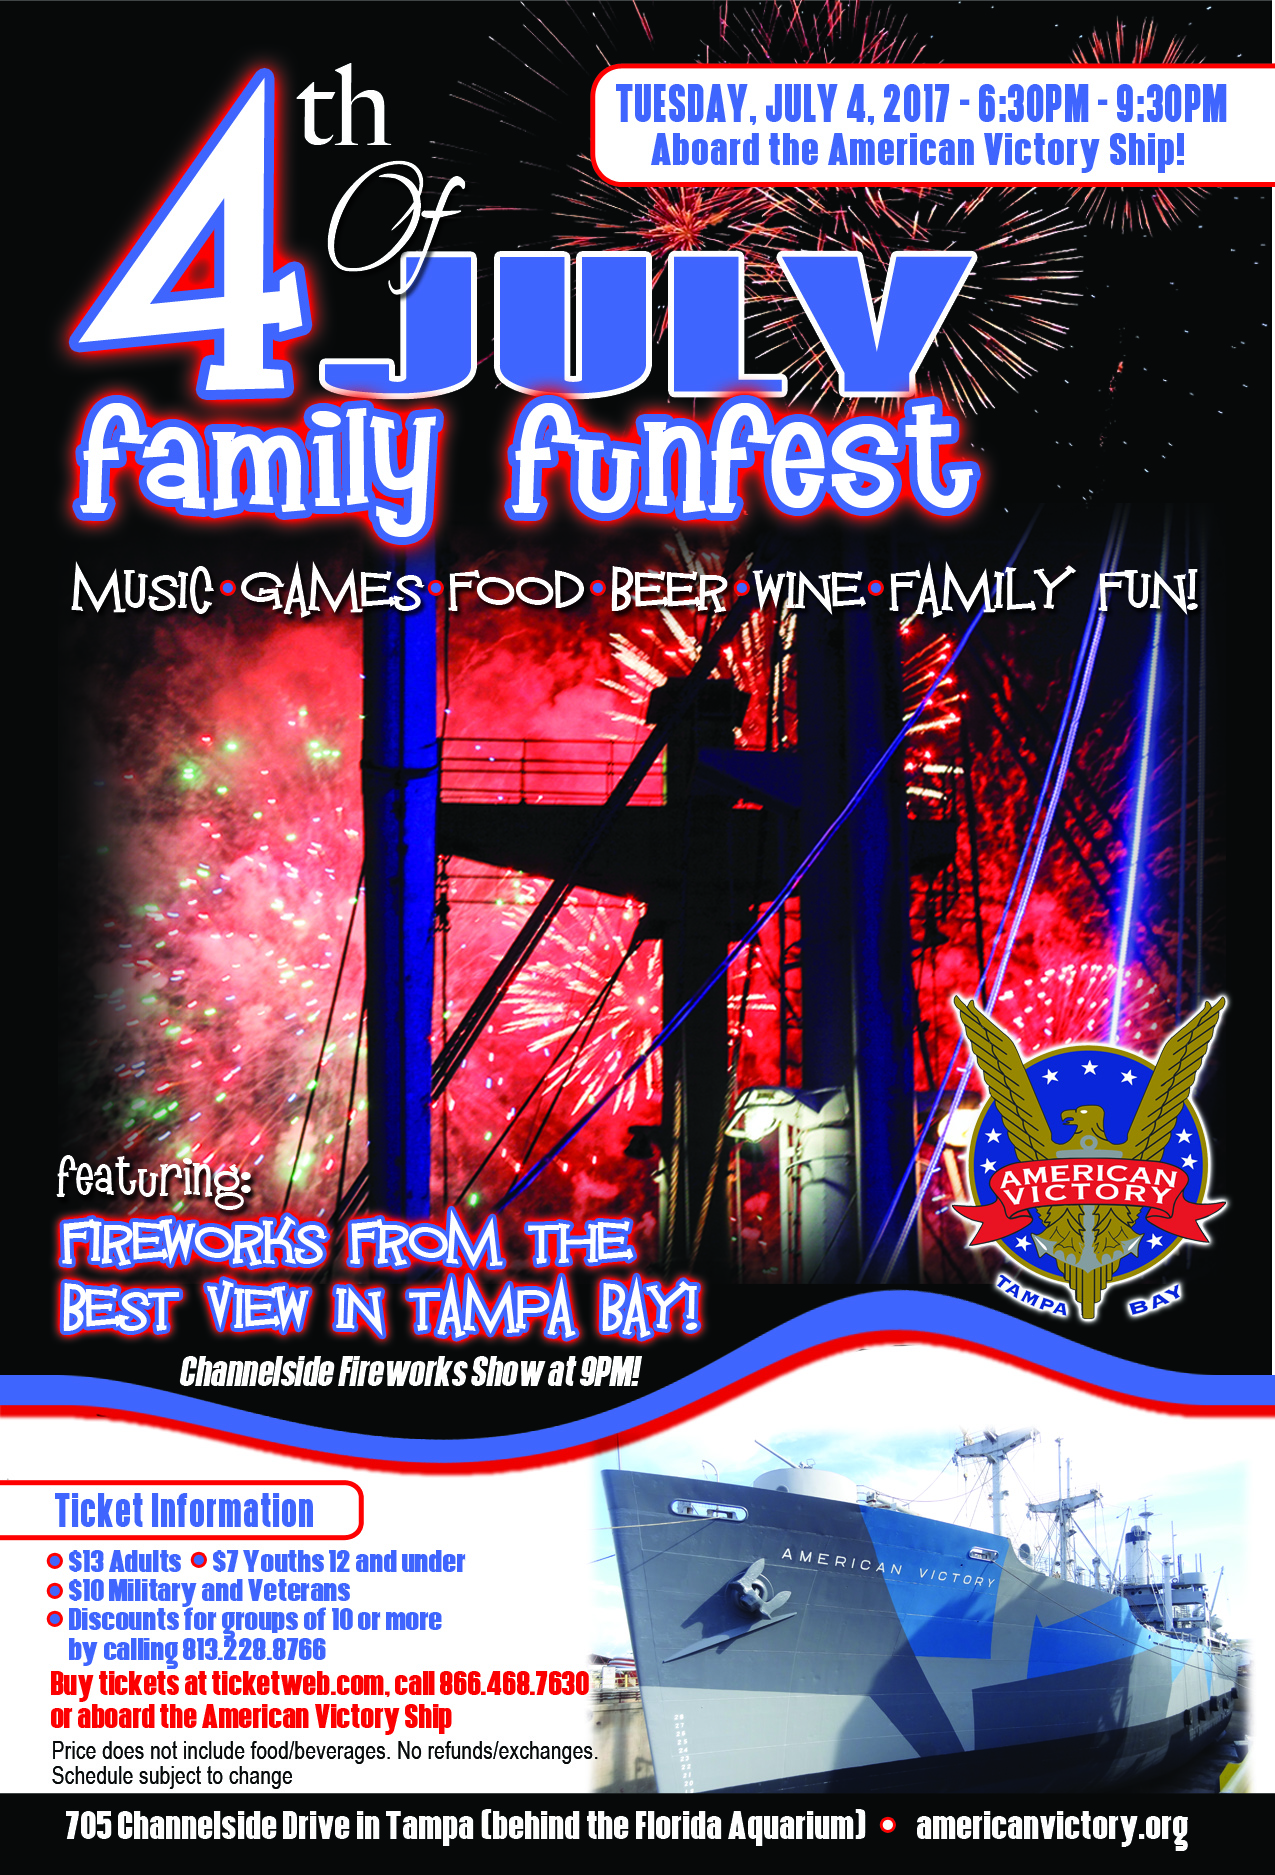 Tickets available now for the 4th of July Family FunFest!